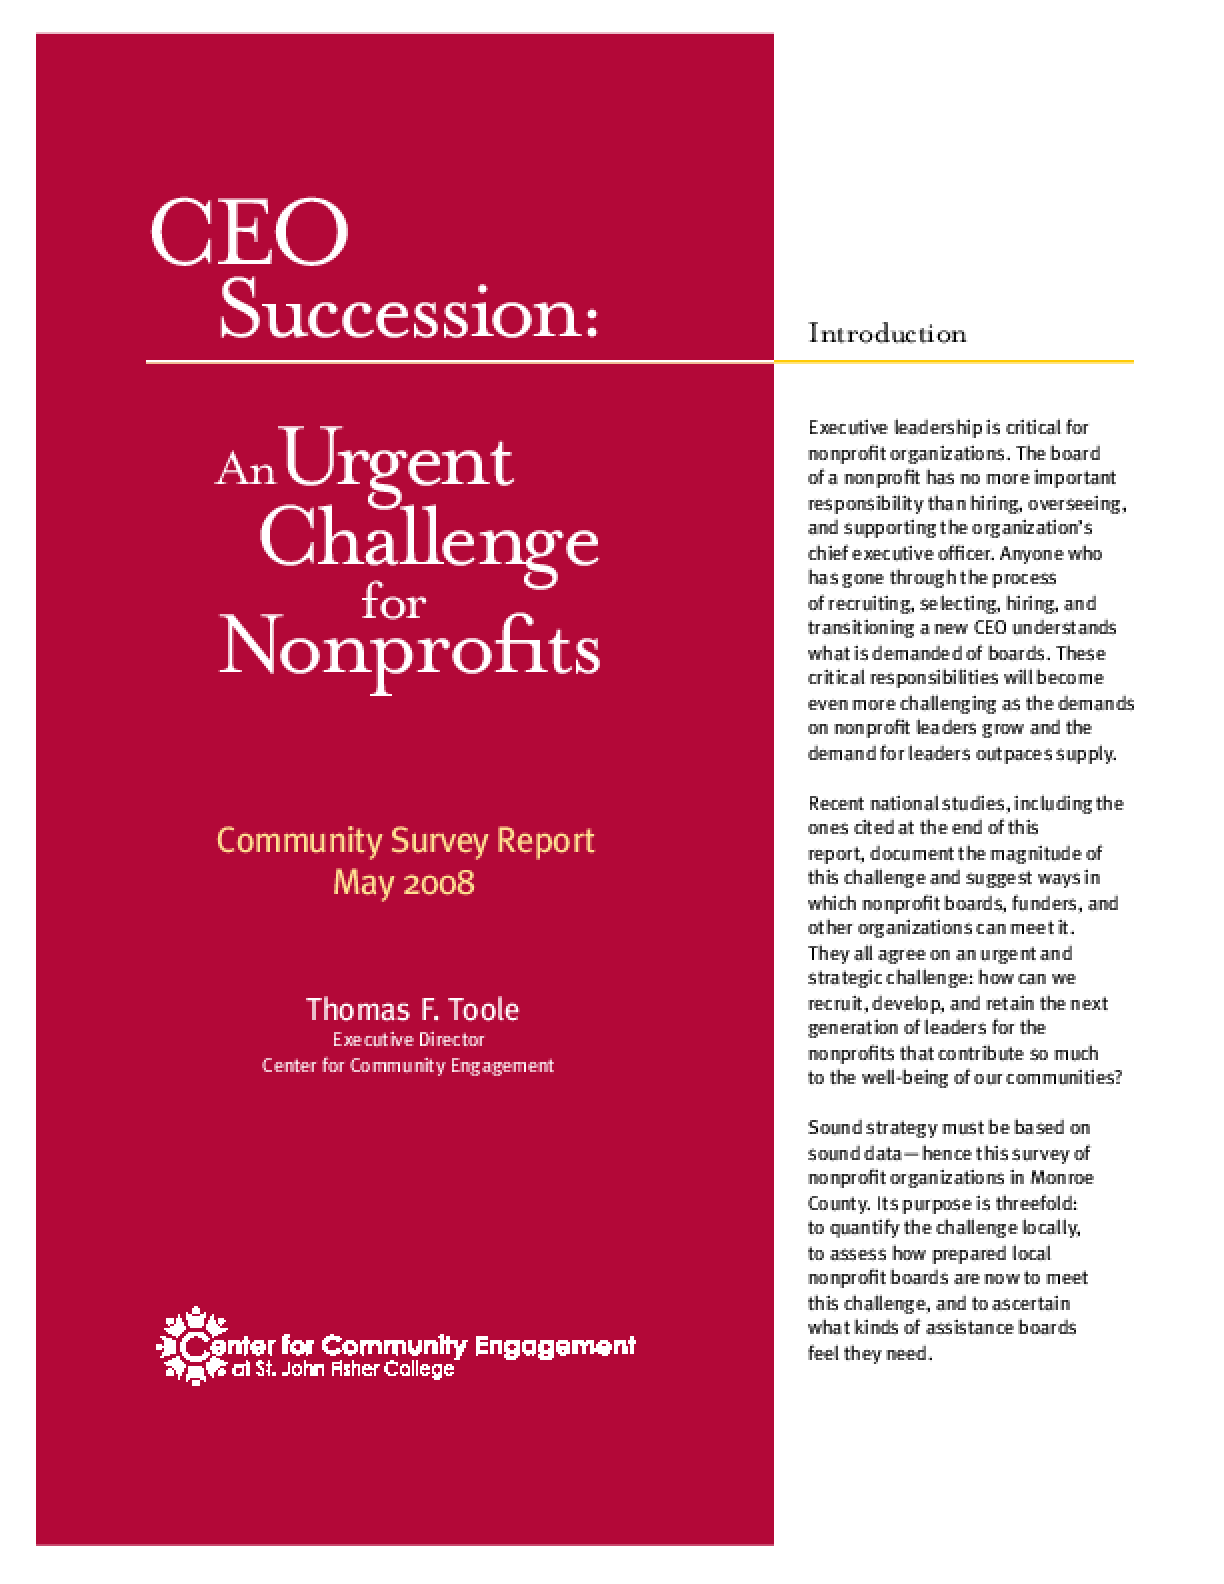 CEO Succession: an Urgent Challenge for Nonprofits